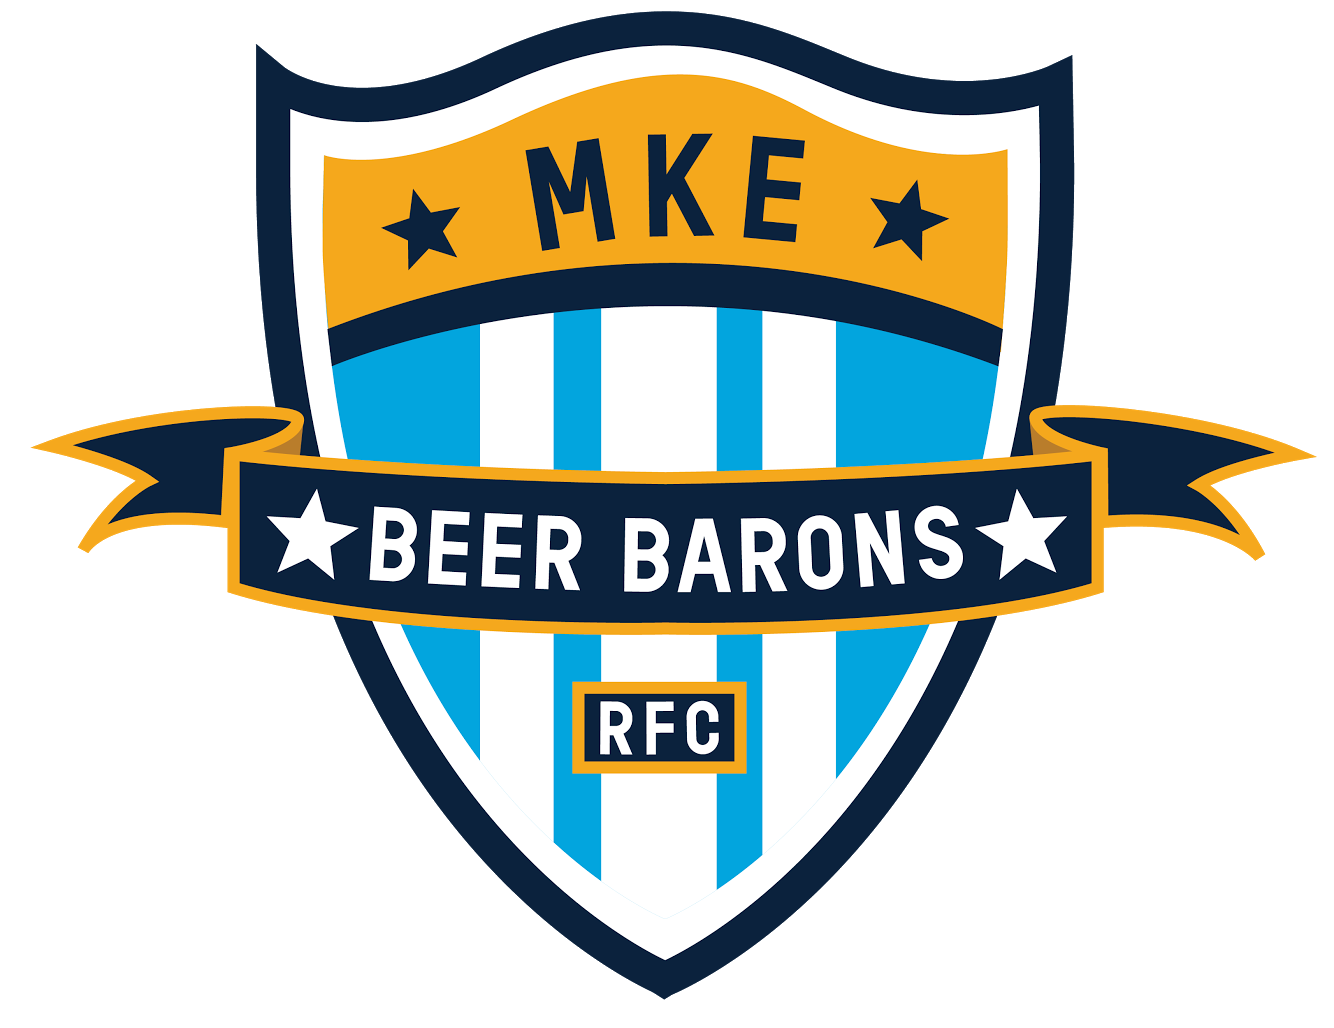 Milwaukee Beer Barons Rugby Football Club